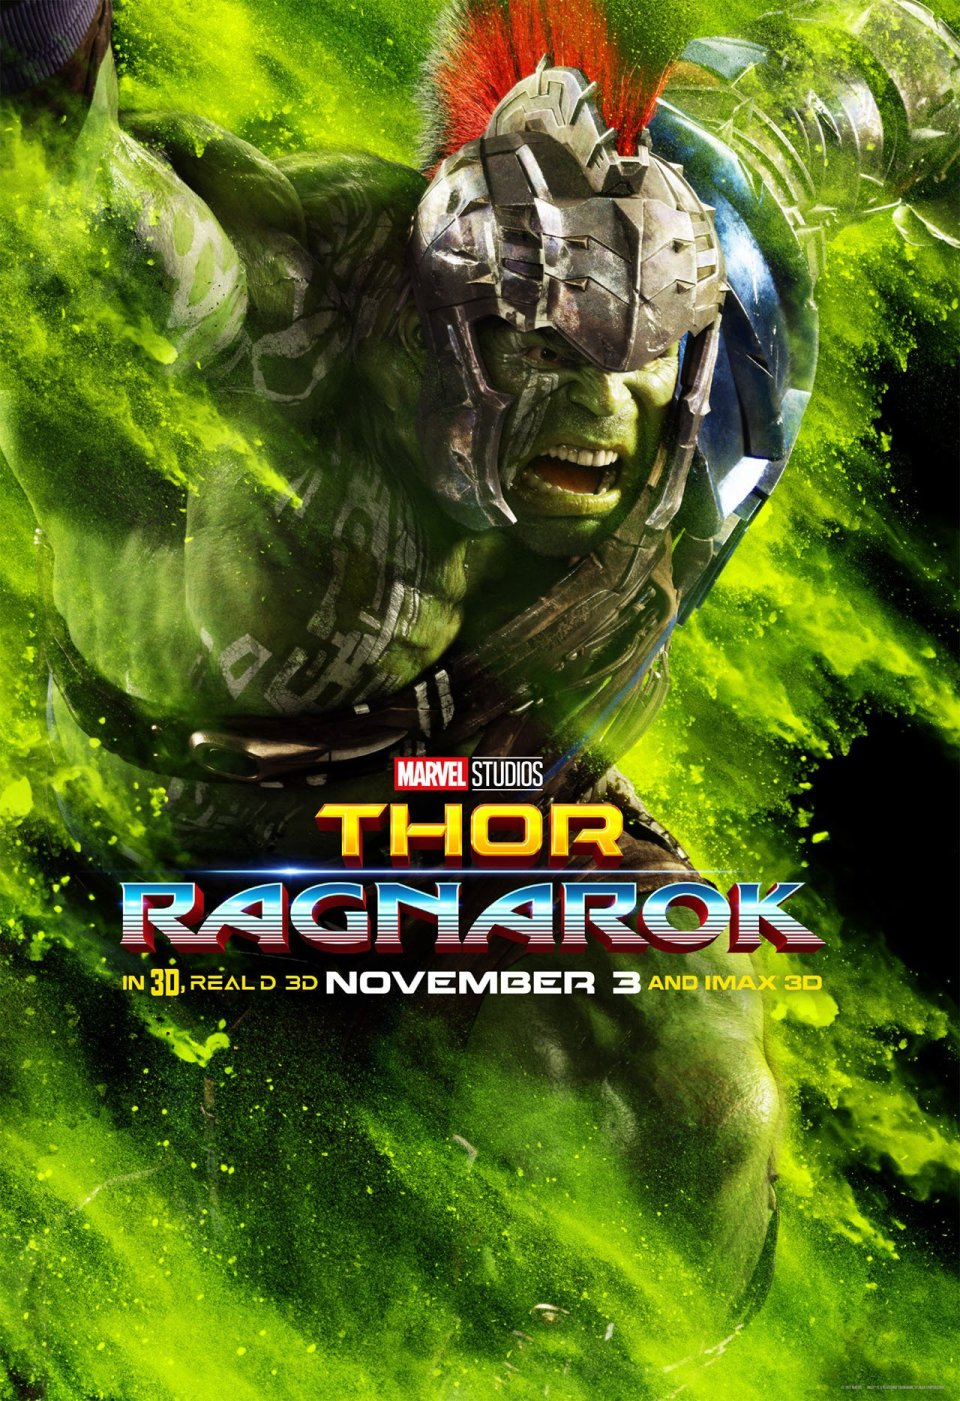 8-wild-thor-ragnarok-character-posters-give-the-heroes-and-villains-an-explosion-of-color.jpeg